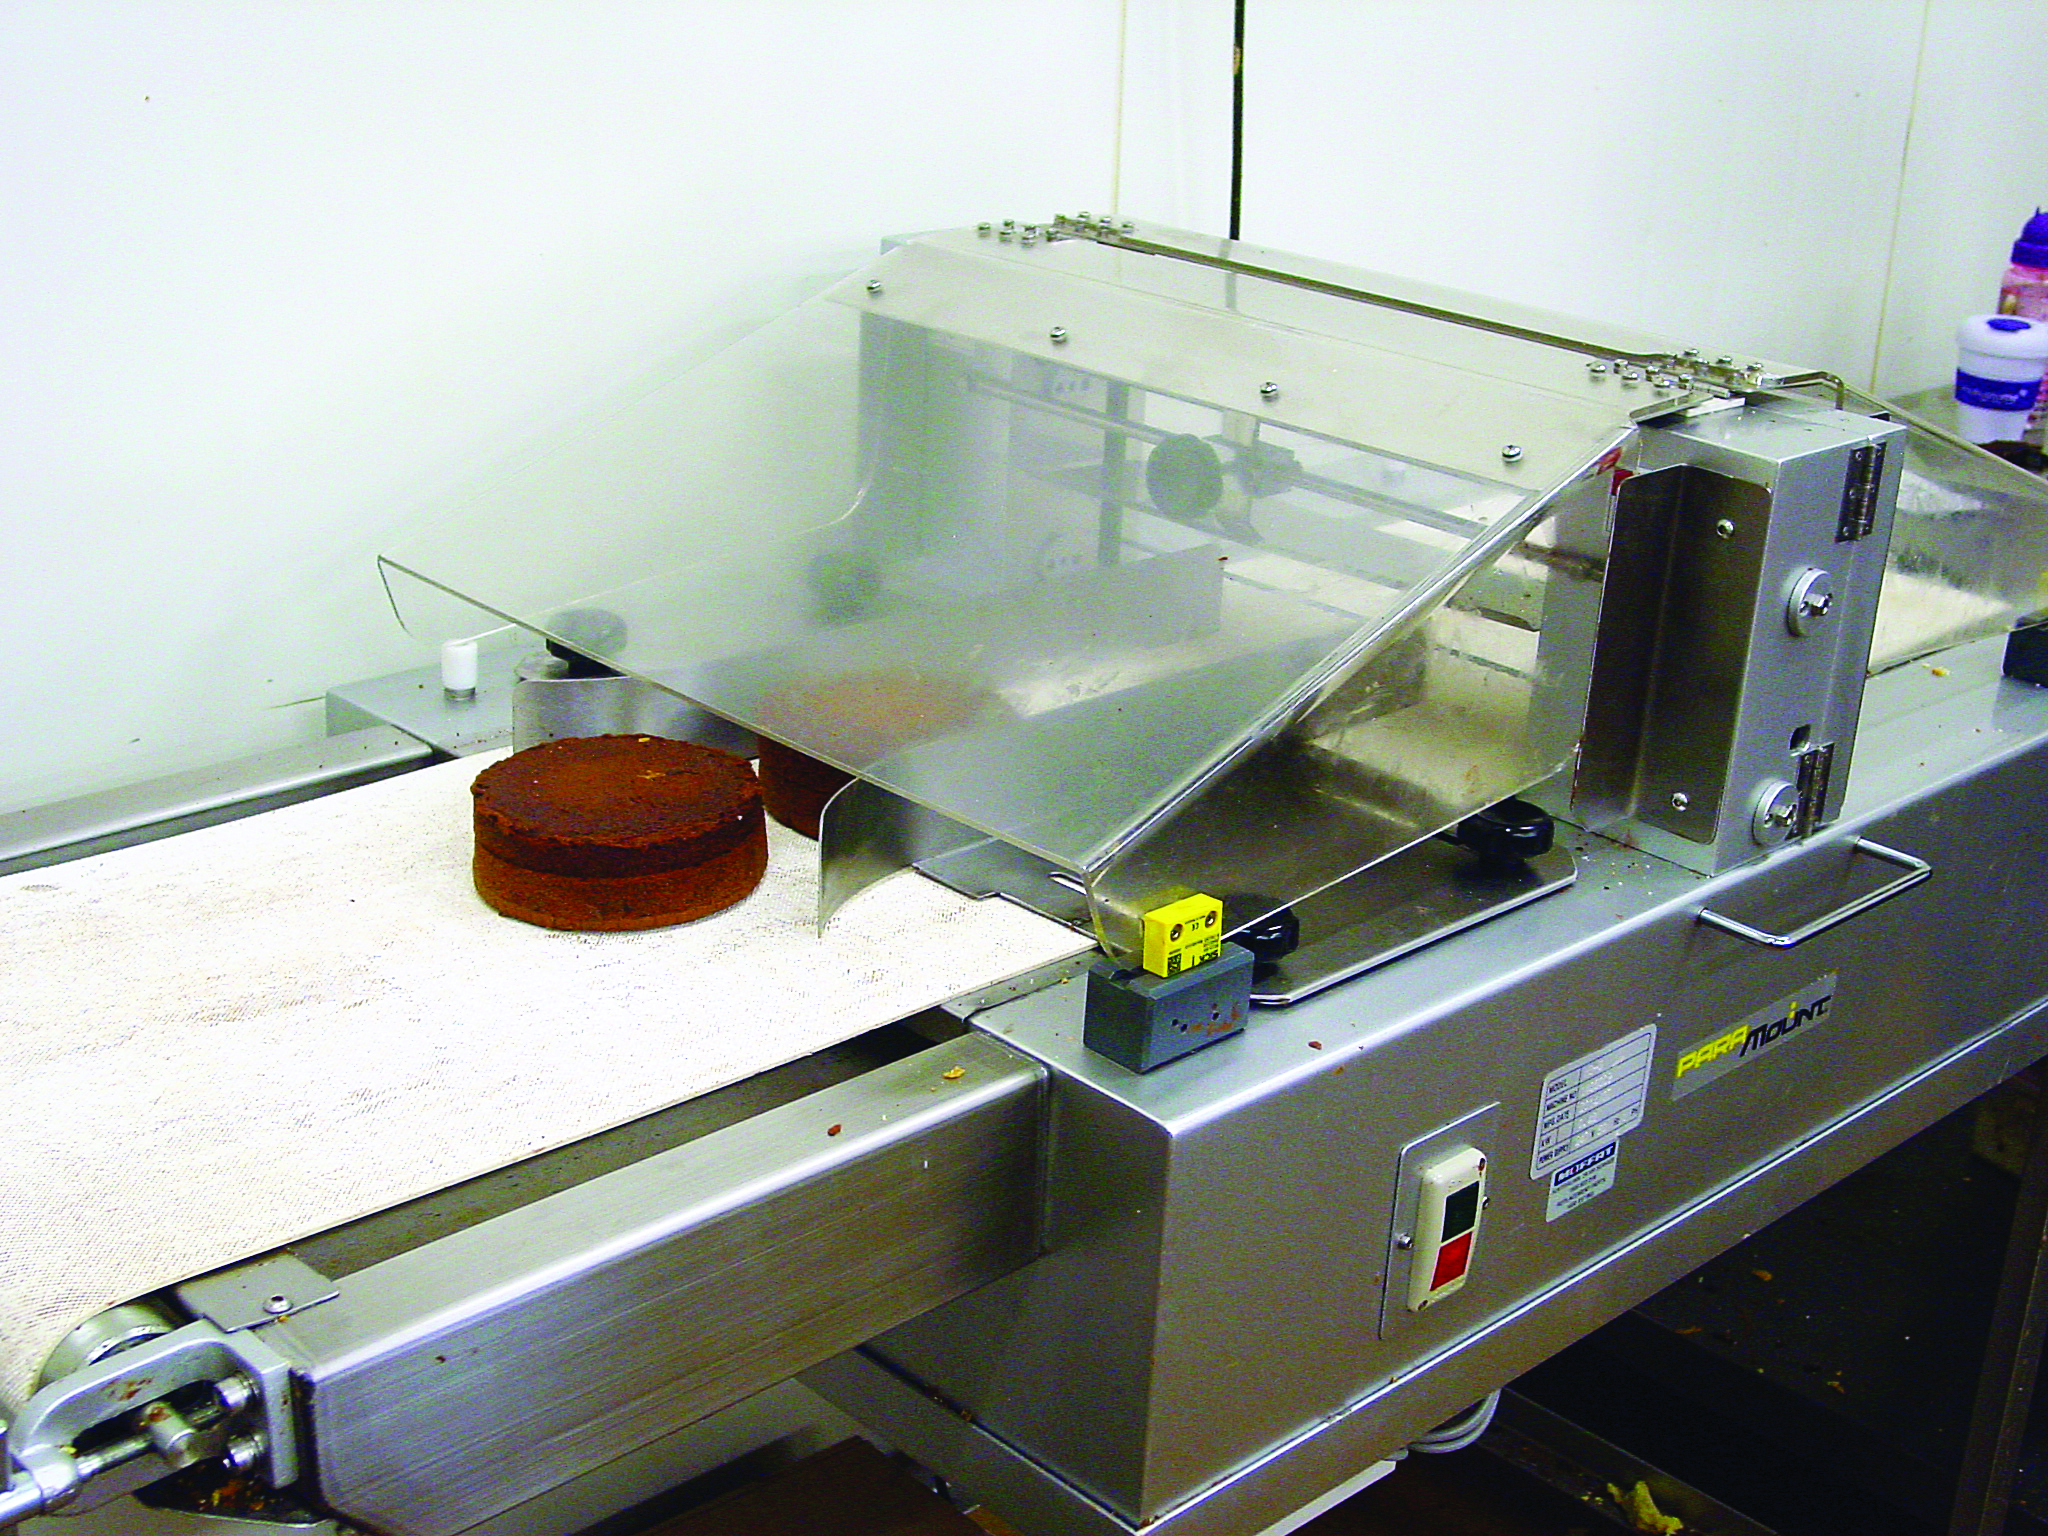 The Tagliavini rack oven and a cake slicer, have provided exciting new capabilities to the commercial kitchen.